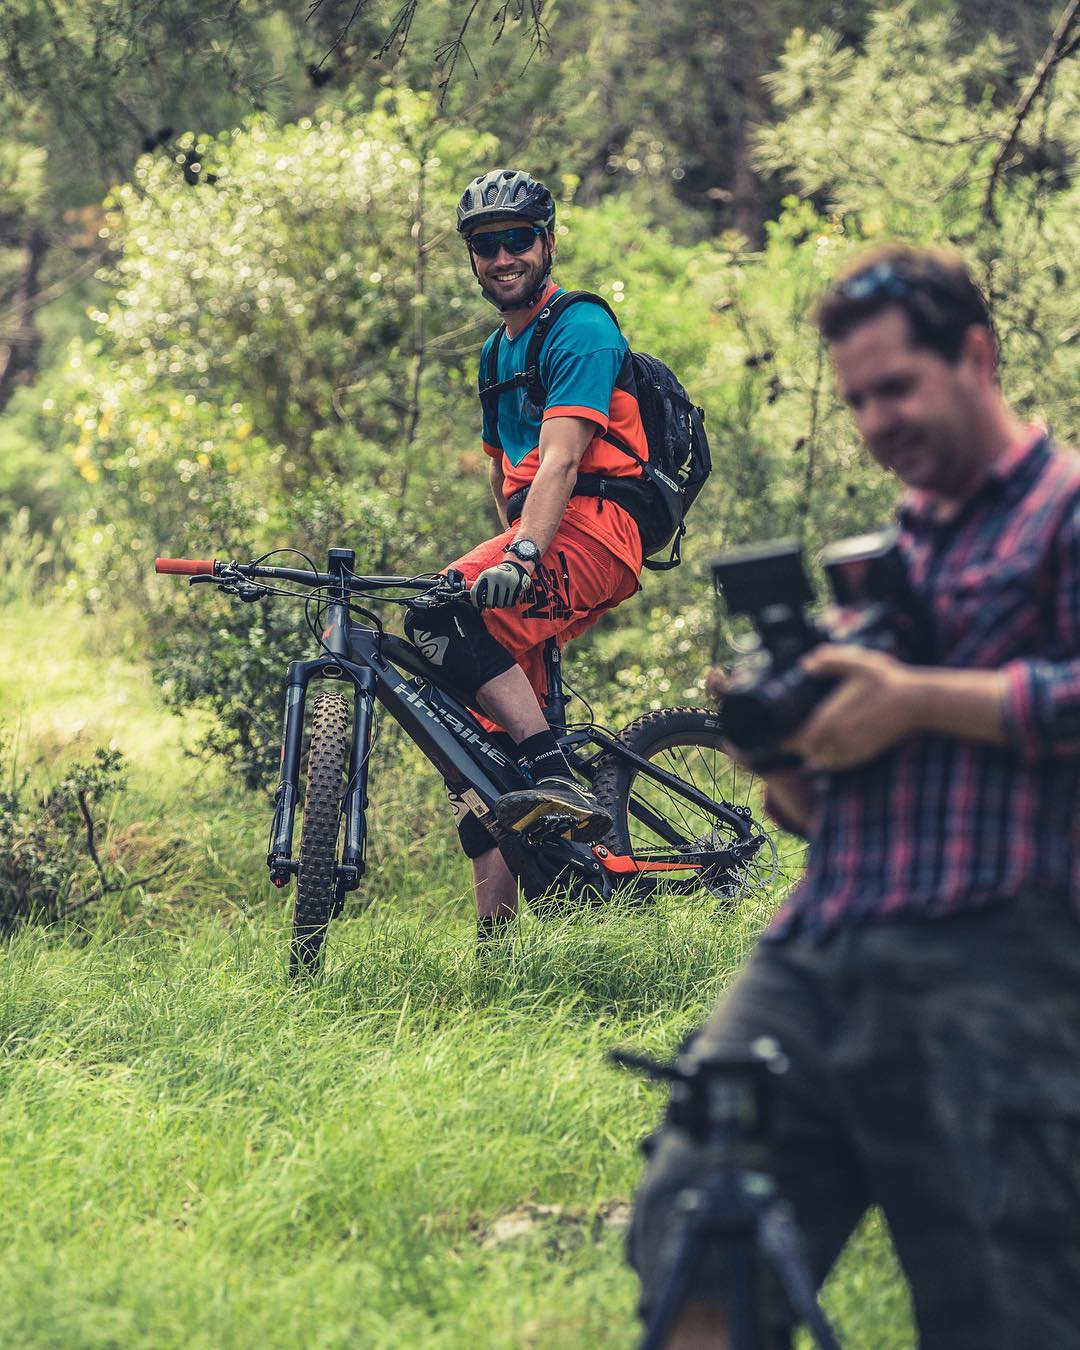 It was rad to shoot and film with @andiwittmann out in Croatia last week. He has been through some nasty injuries the last years but he was riding like a champ and was a star on set. #haibike #allmtn #yamaha #sduro #ebike #emtb #mtb